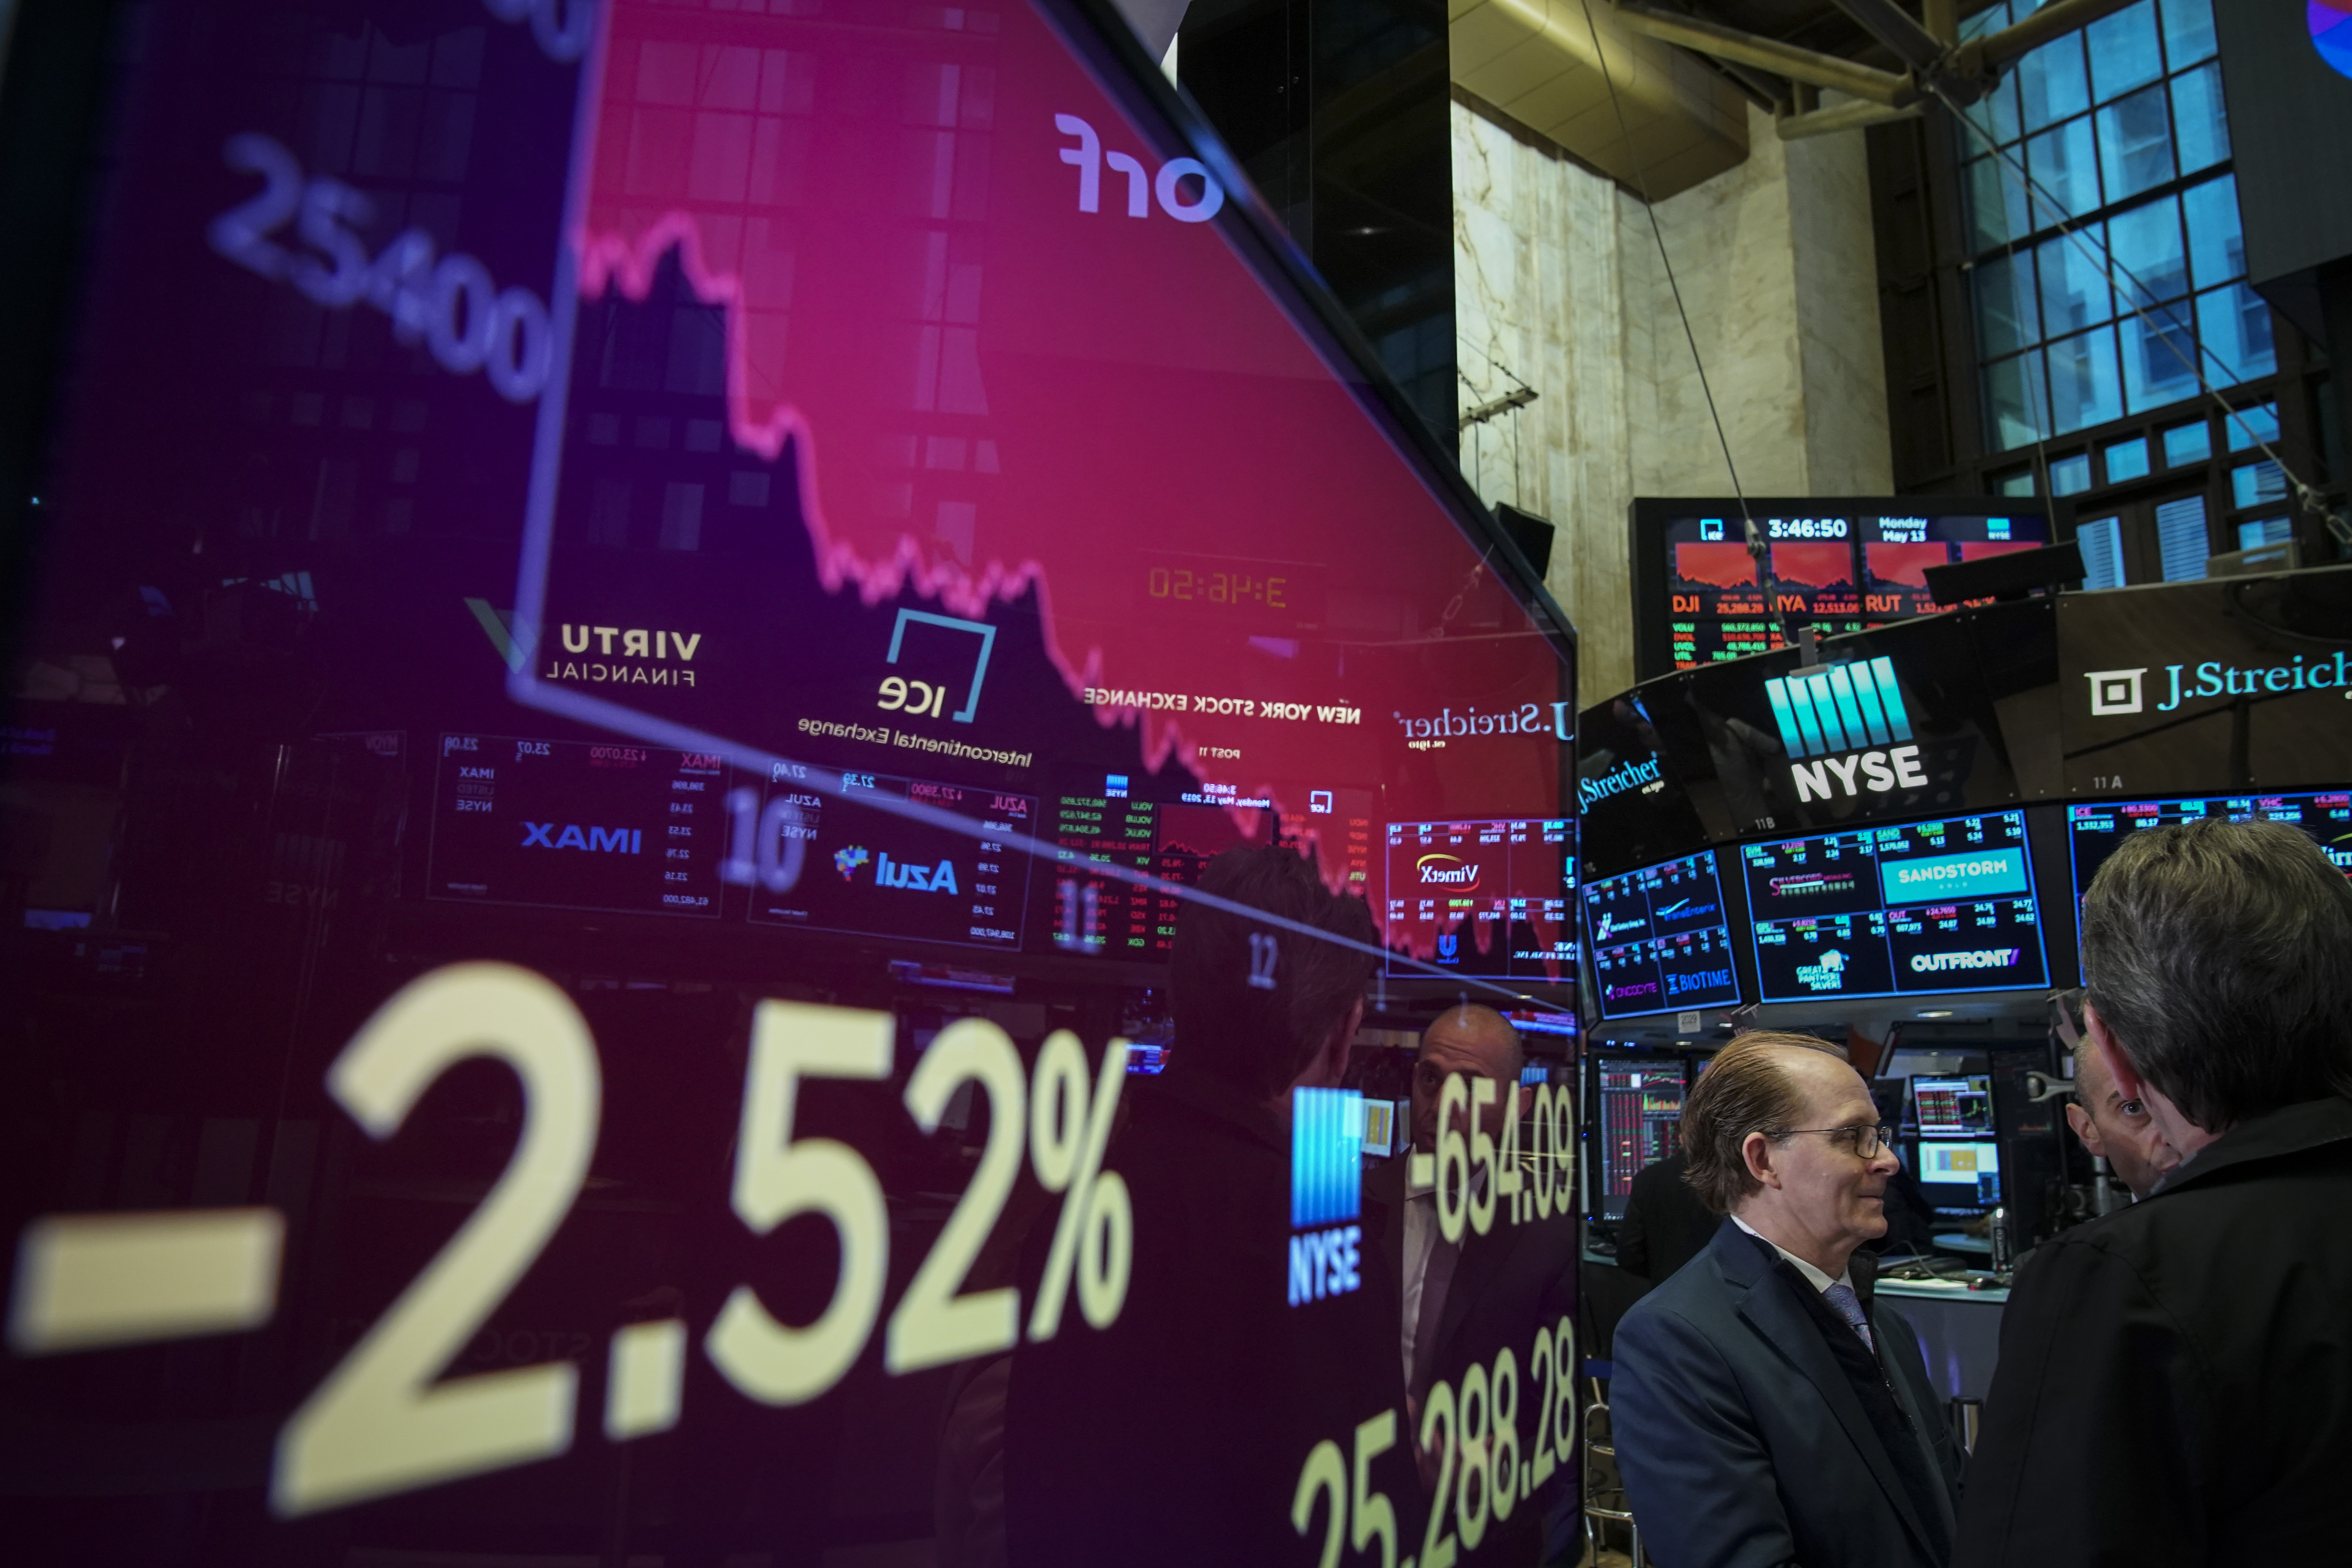 A stock exchange screen shows a chart going down and to the right with the negative number 2.52 percent.